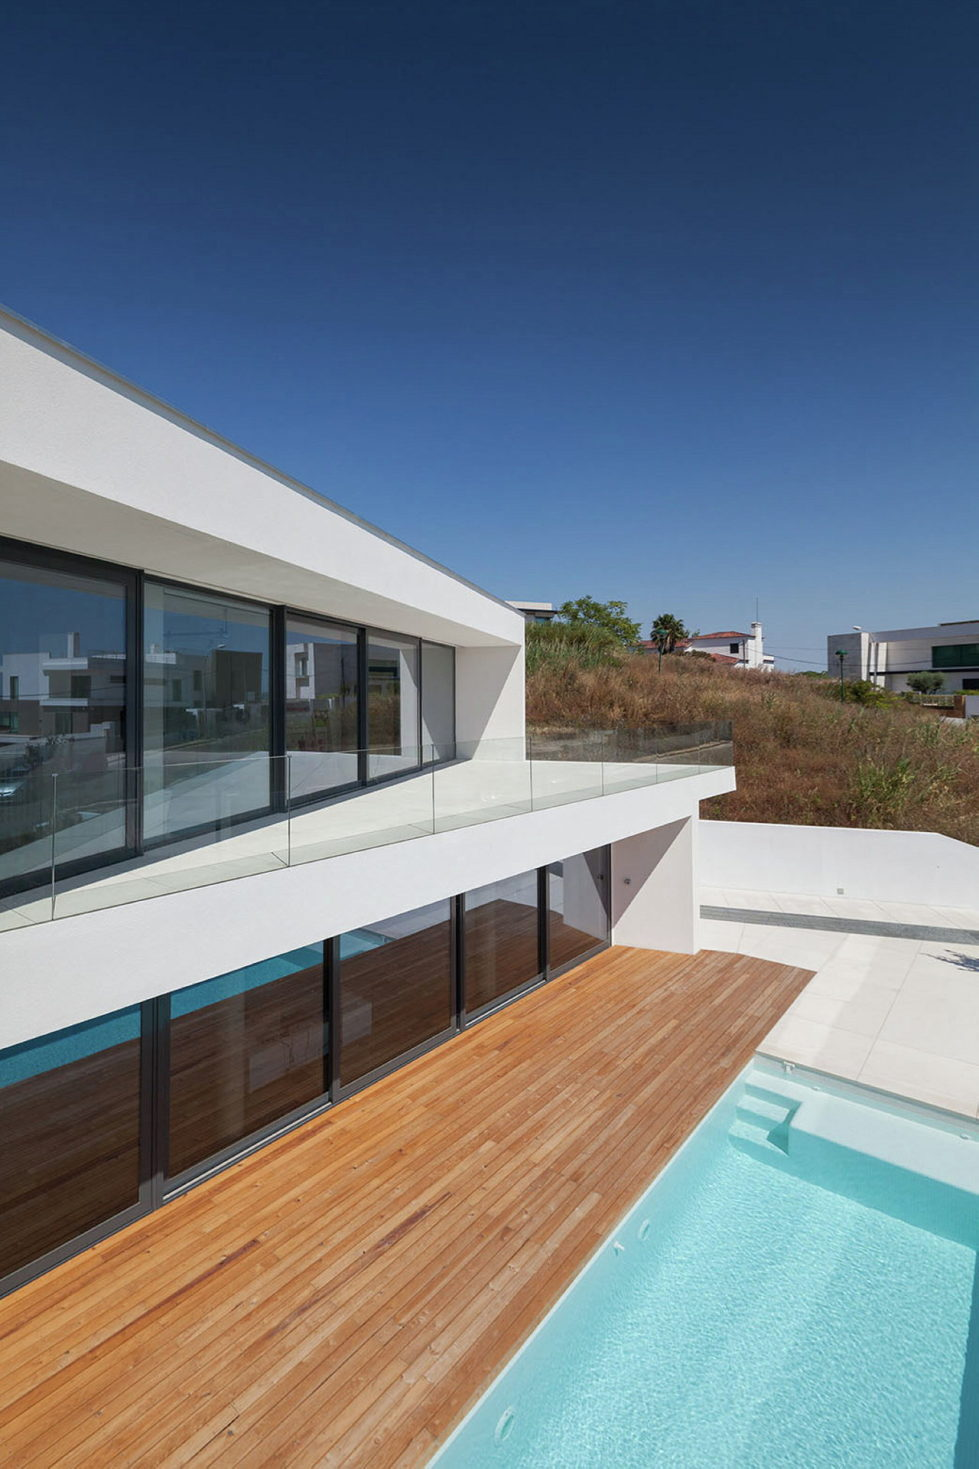 JC House Villa At The Suburb Of Lisbon, Portugal, Upon The Project Of JPS Atelier 11